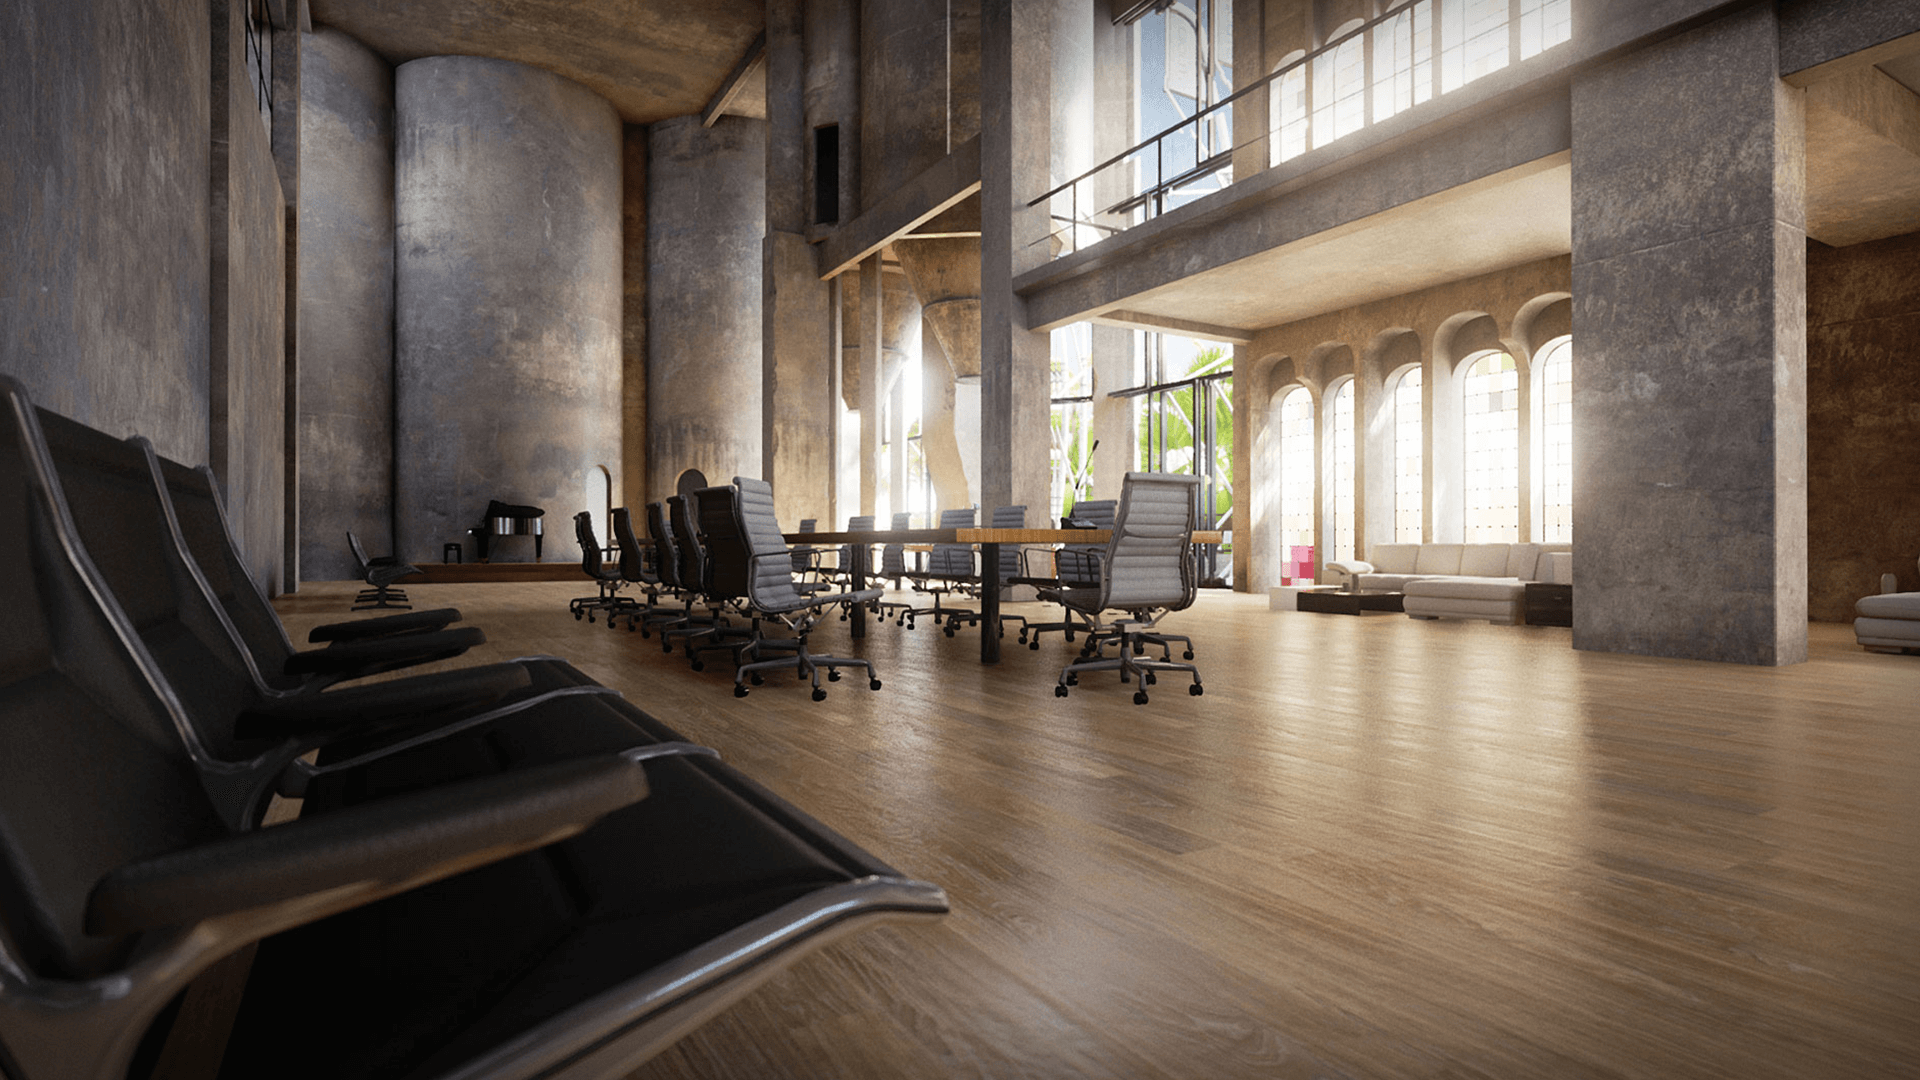 Archinteriors Vol 2 Scene 3 By Evermotion In Architectural Visualization    UE4 Marketplace